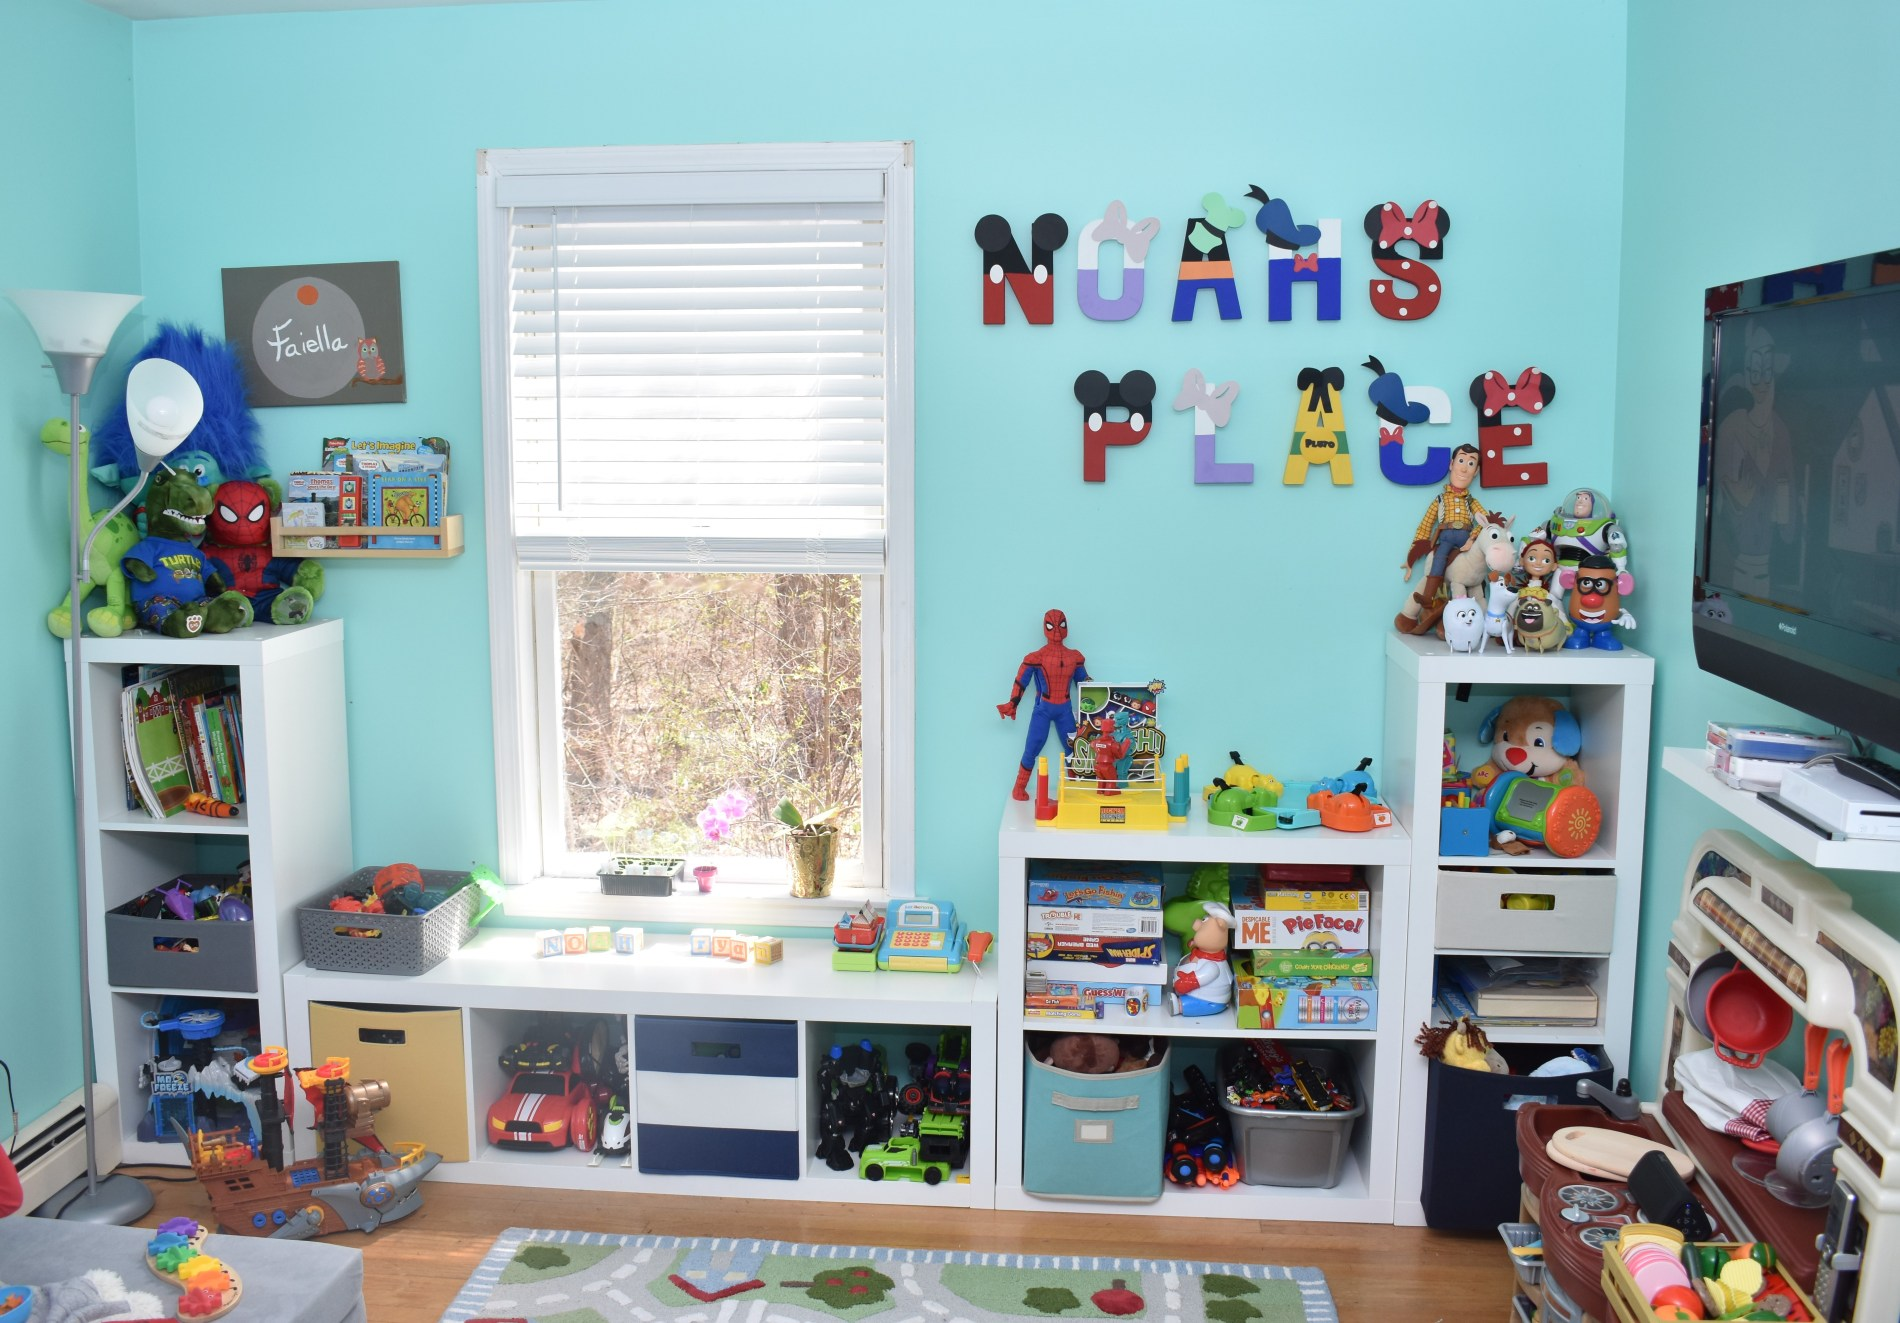 Mama of Both Worlds - Our Playroom